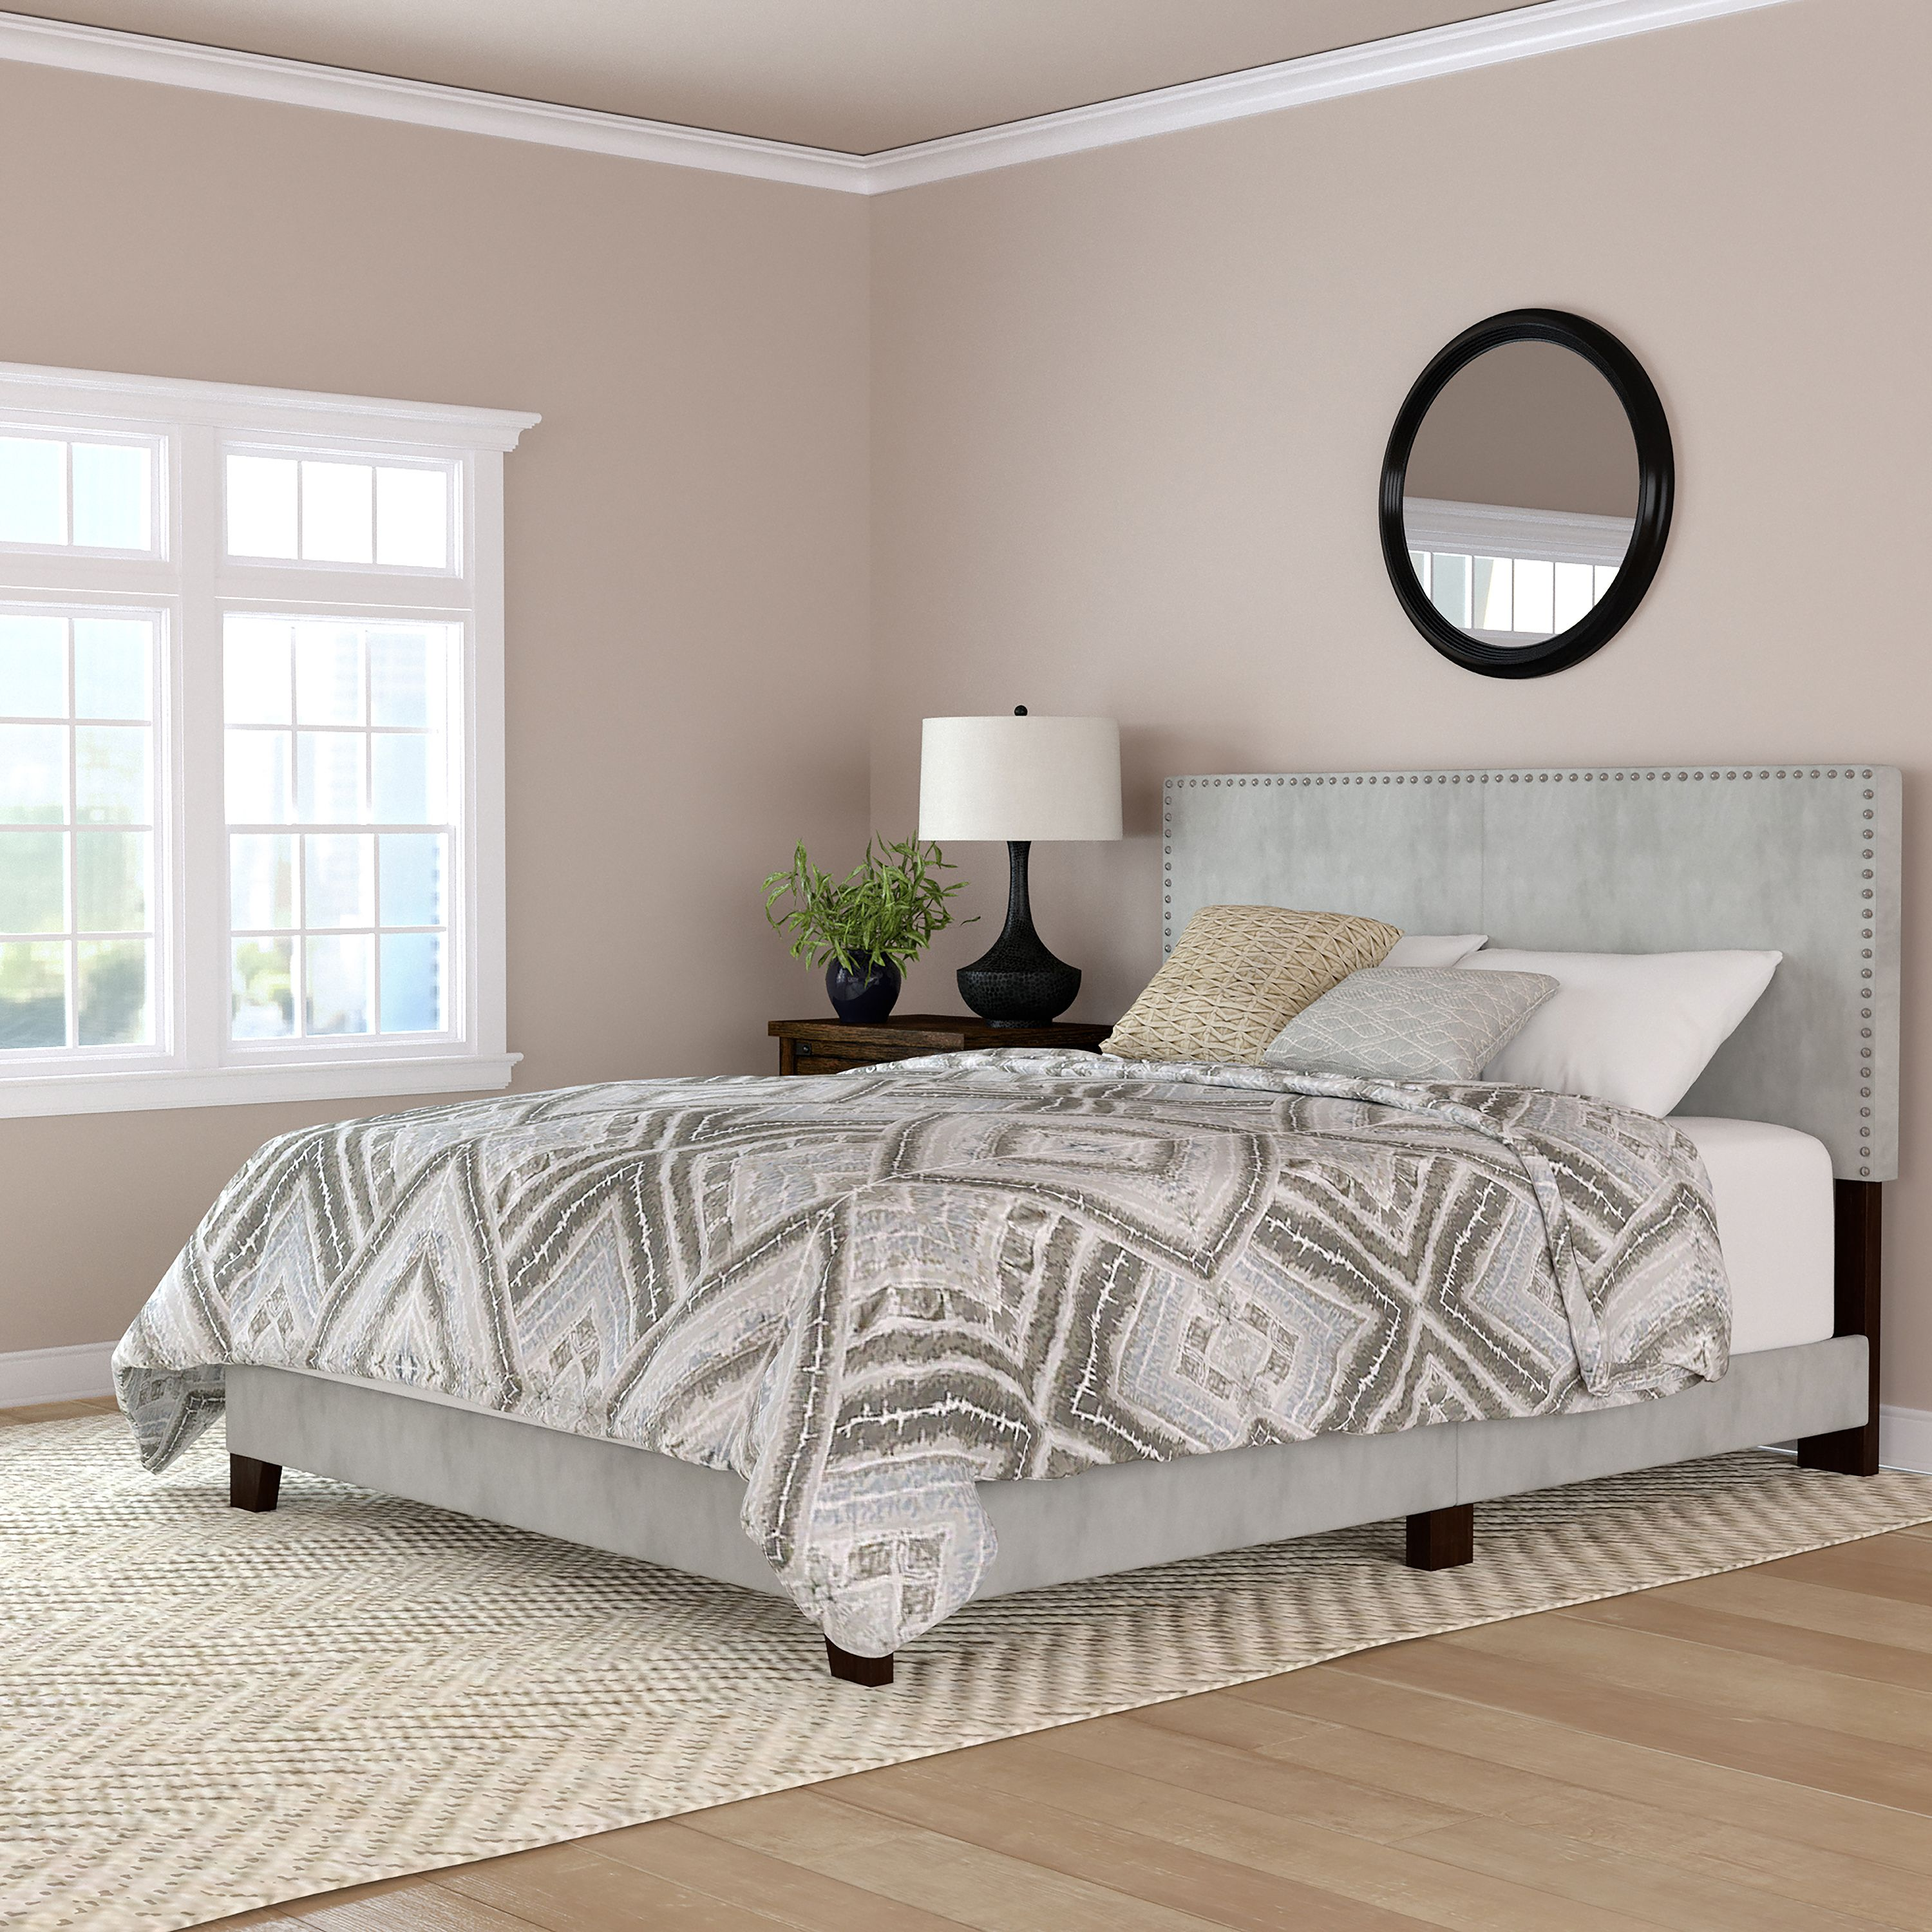 Mainstays Velvet Nailhead Queen Size Bed, Multiple Colors